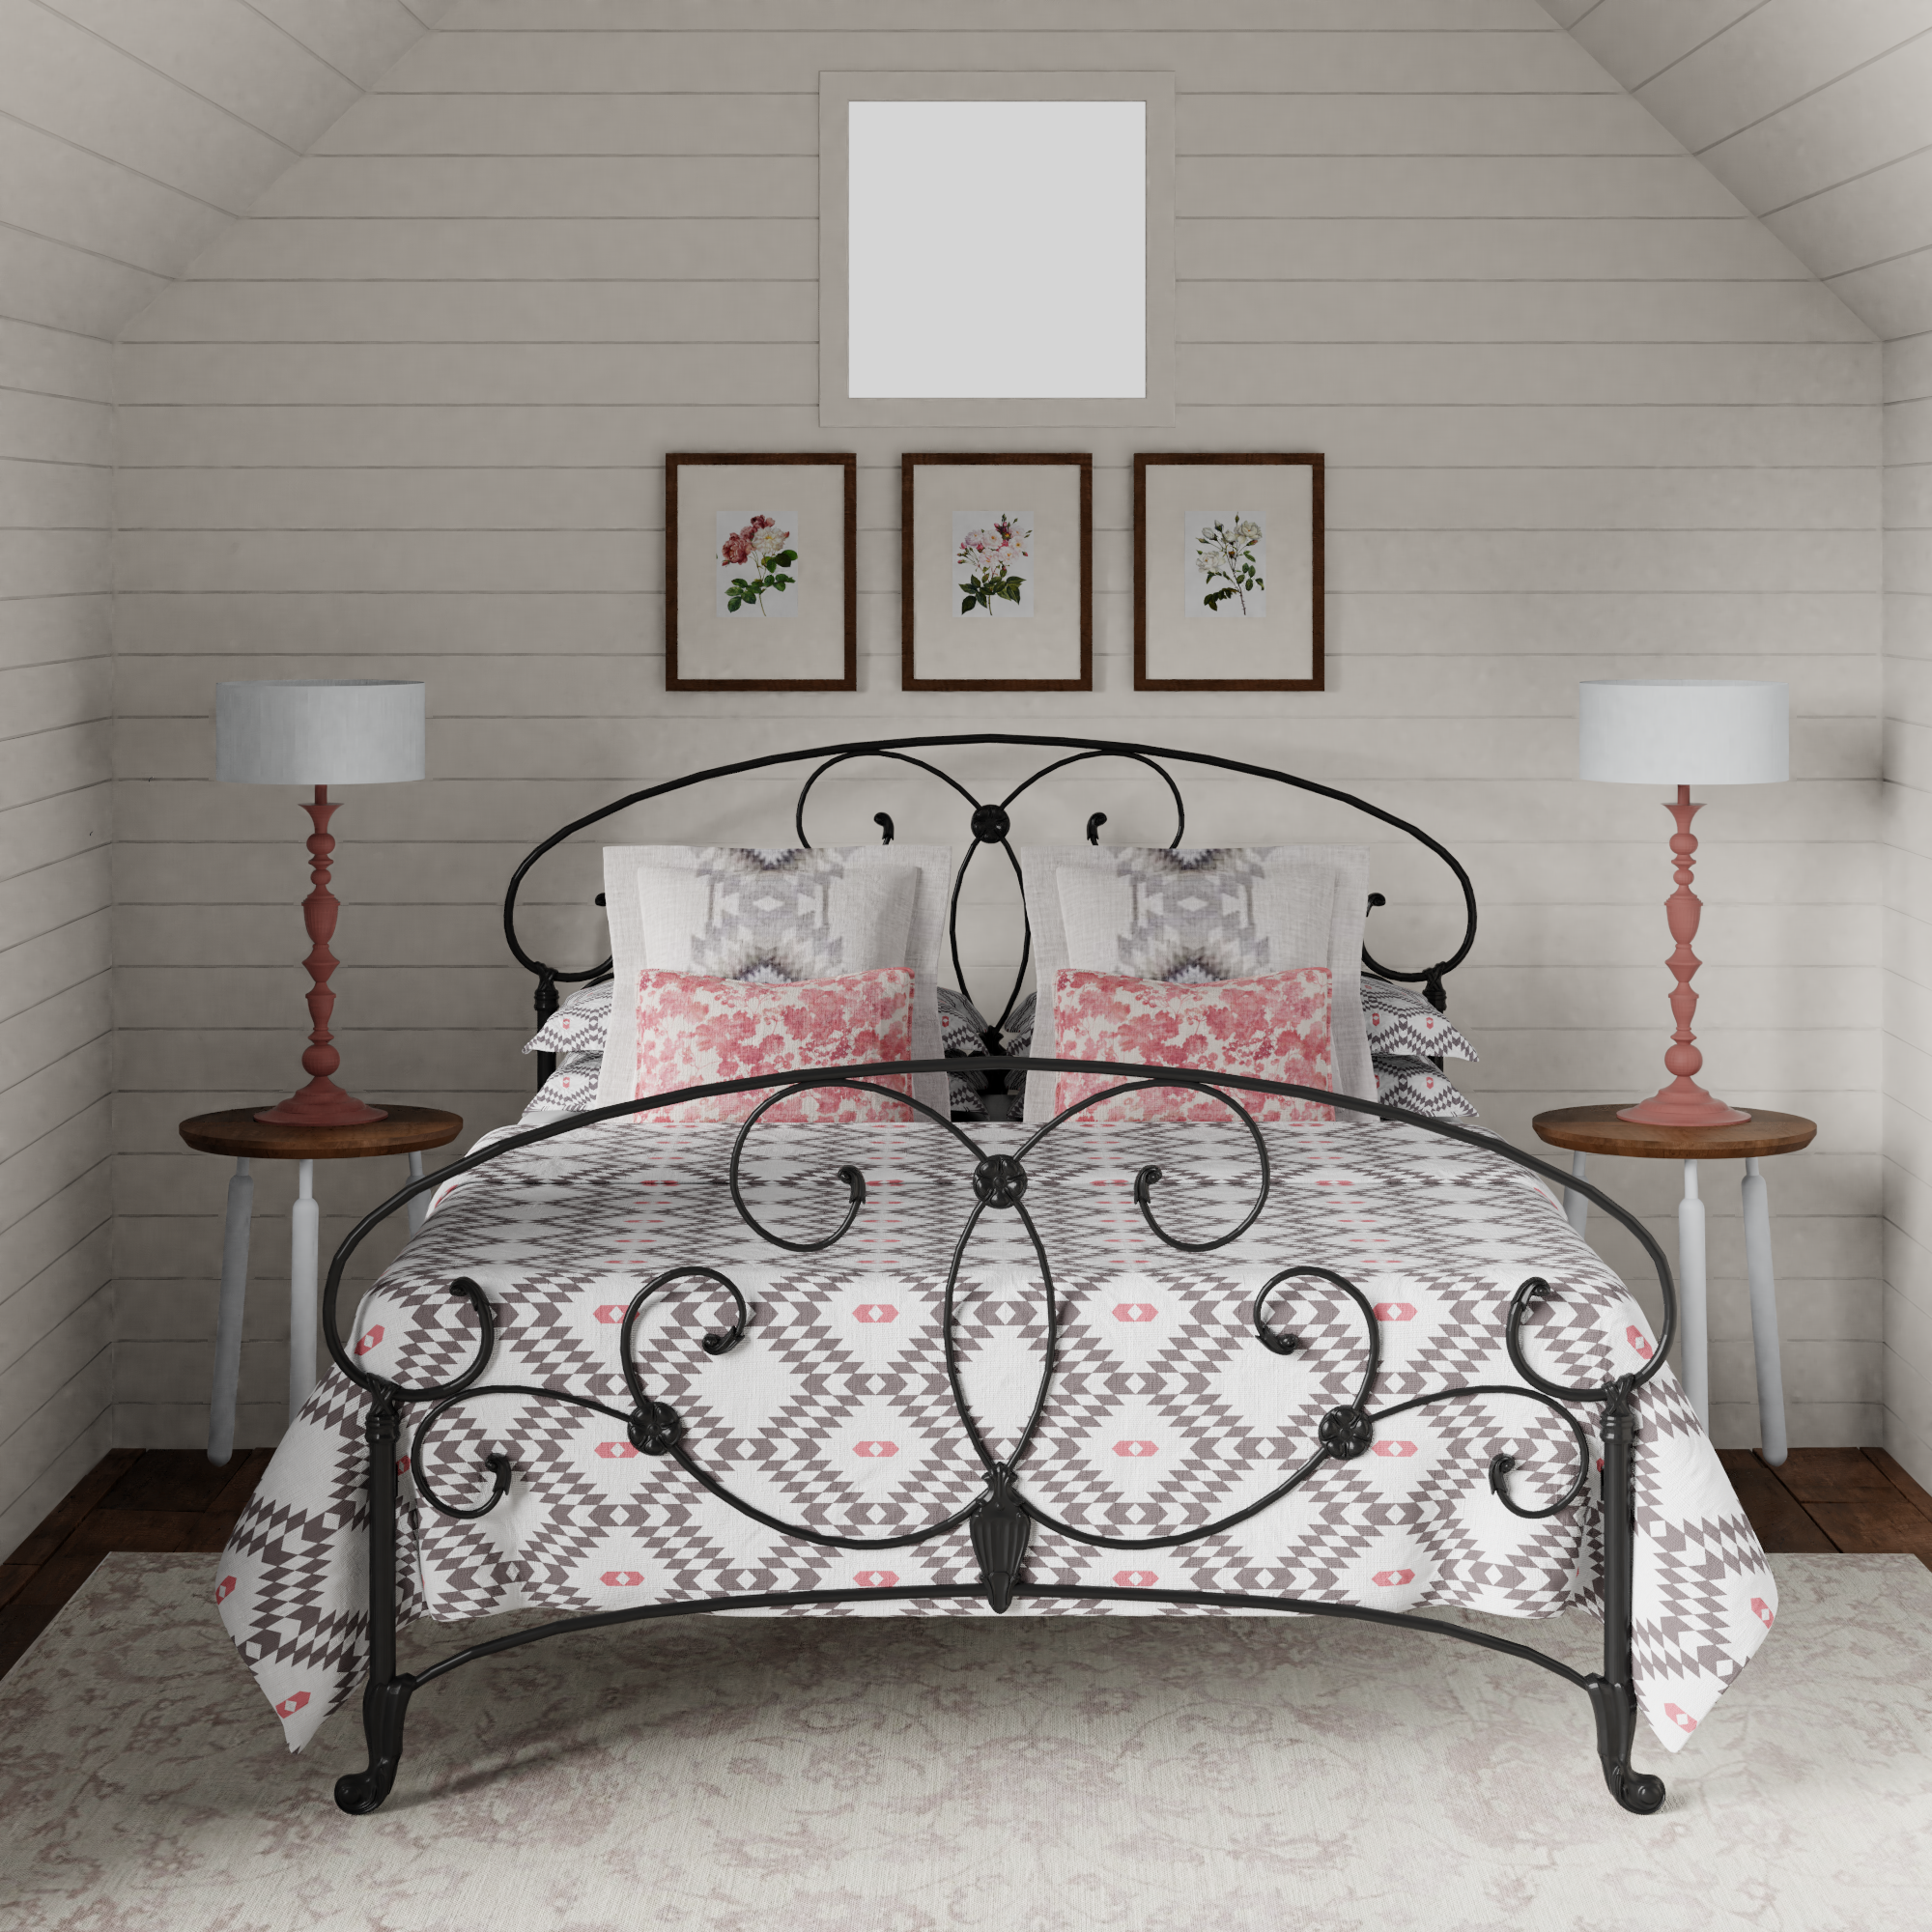 Arigna iron bed in a small bedroom